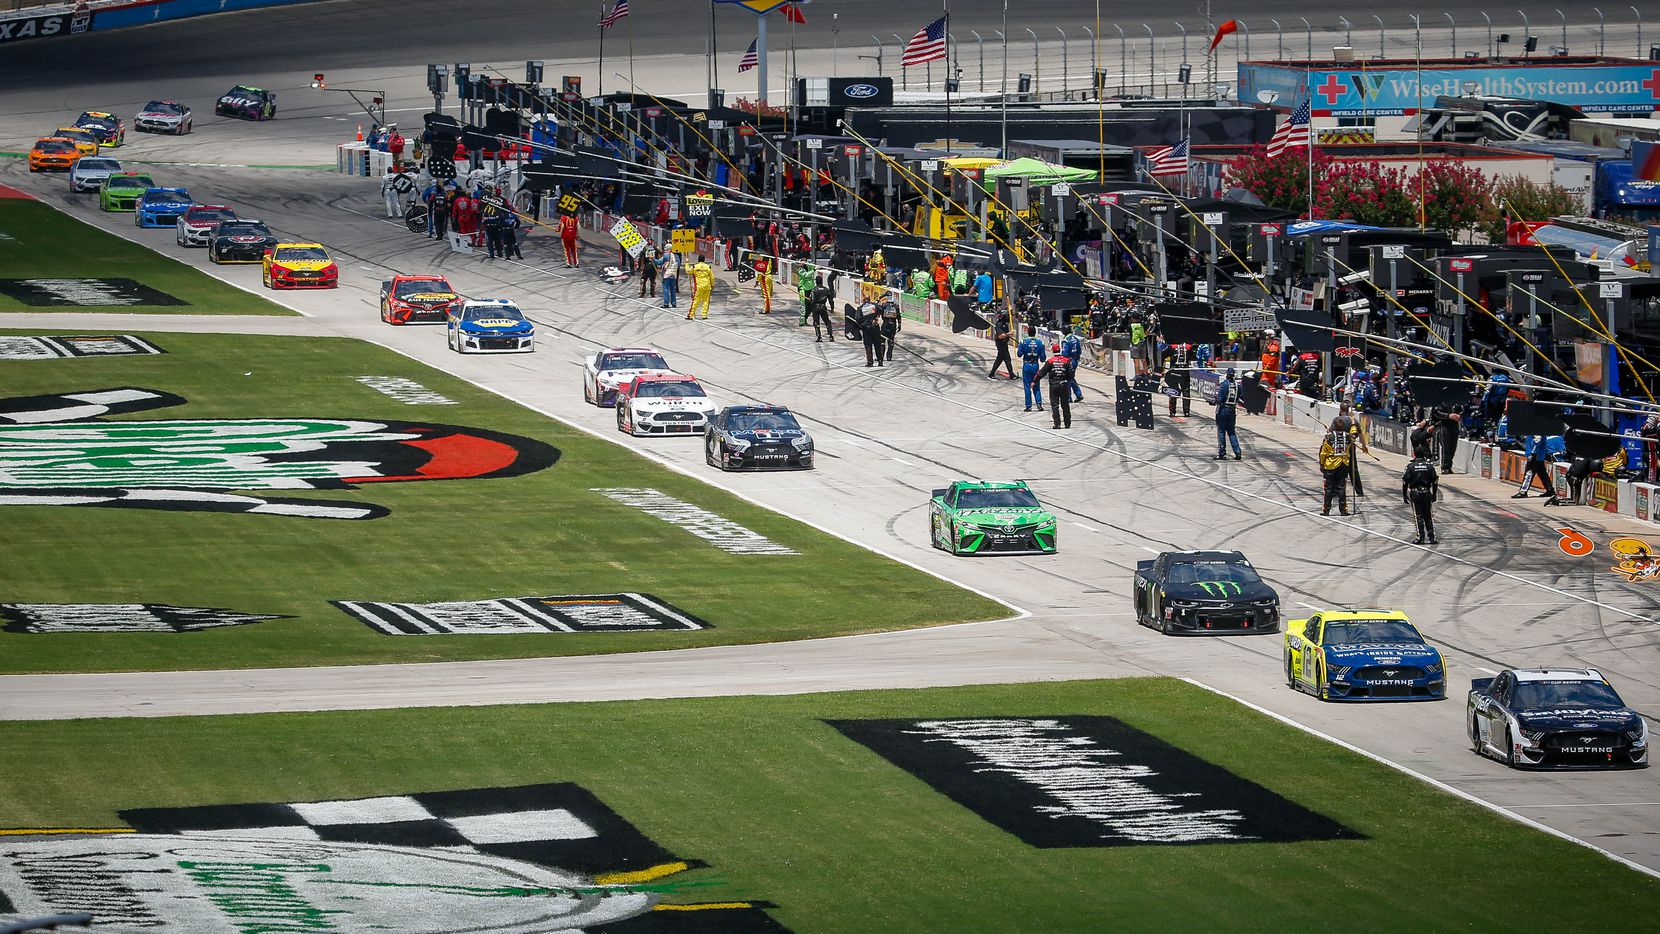 Drivers line up before the start of the NASCAR Cup Series O'Reilly Auto Parts 500 race on July 19, 2020 at Texas Motor Speedway in Fort Worth.